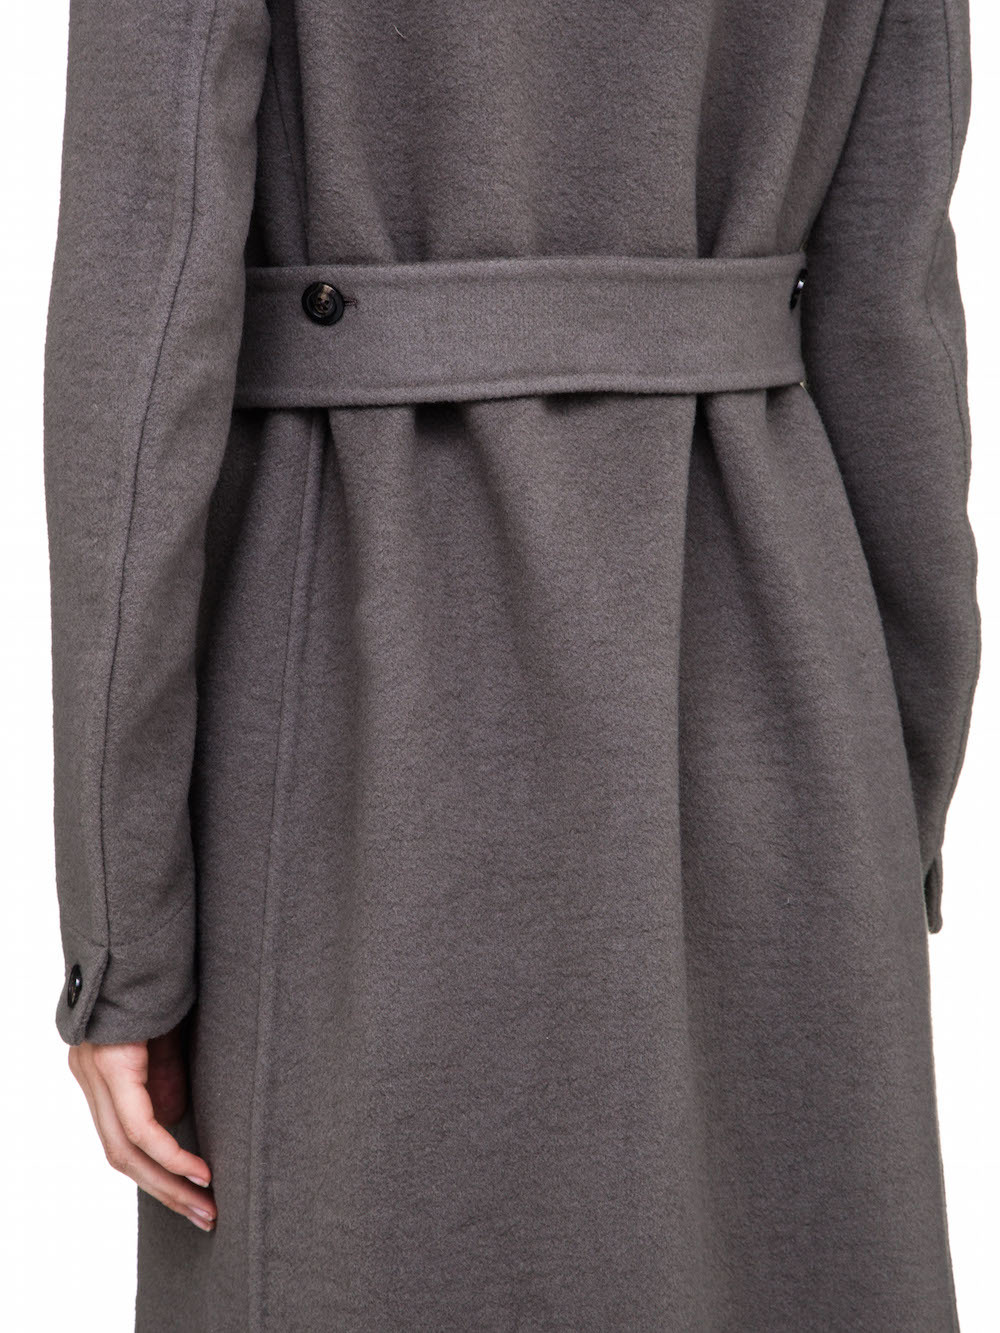 RICK OWENS COAT IN GREY